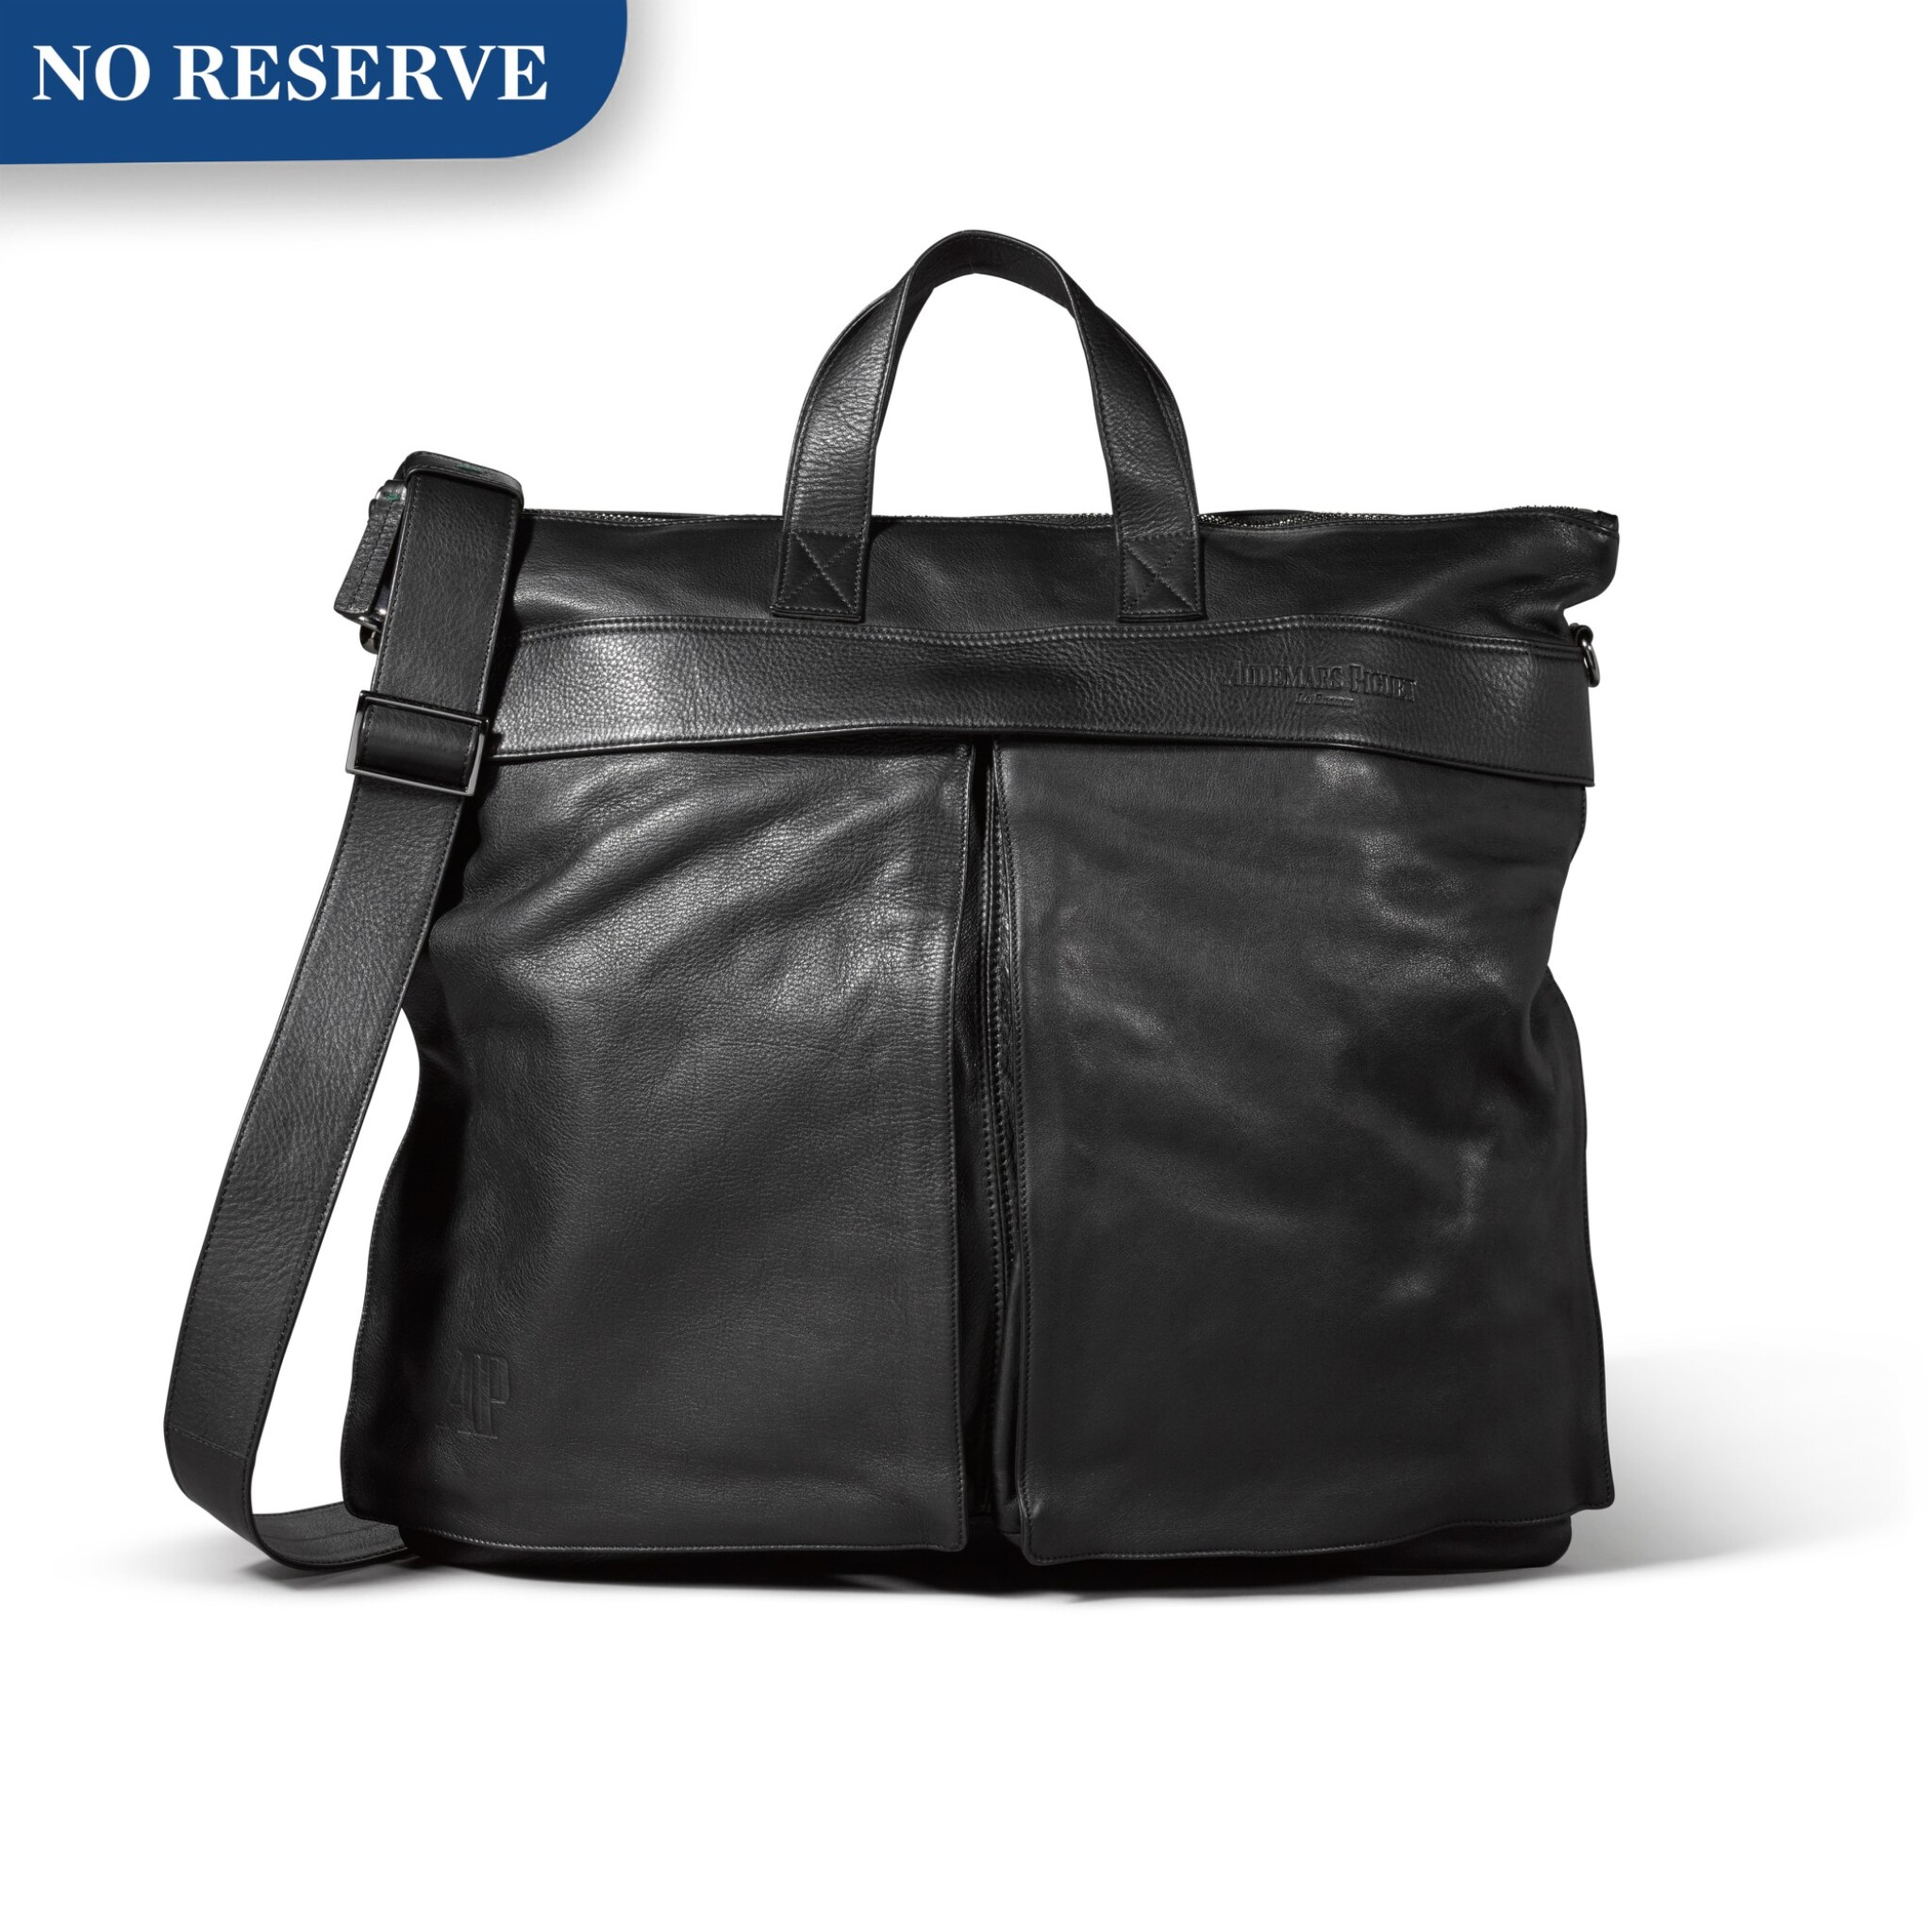 View full screen - View 1 of Lot 723. BLACK LEATHER TOTE MESSENGER BAG.